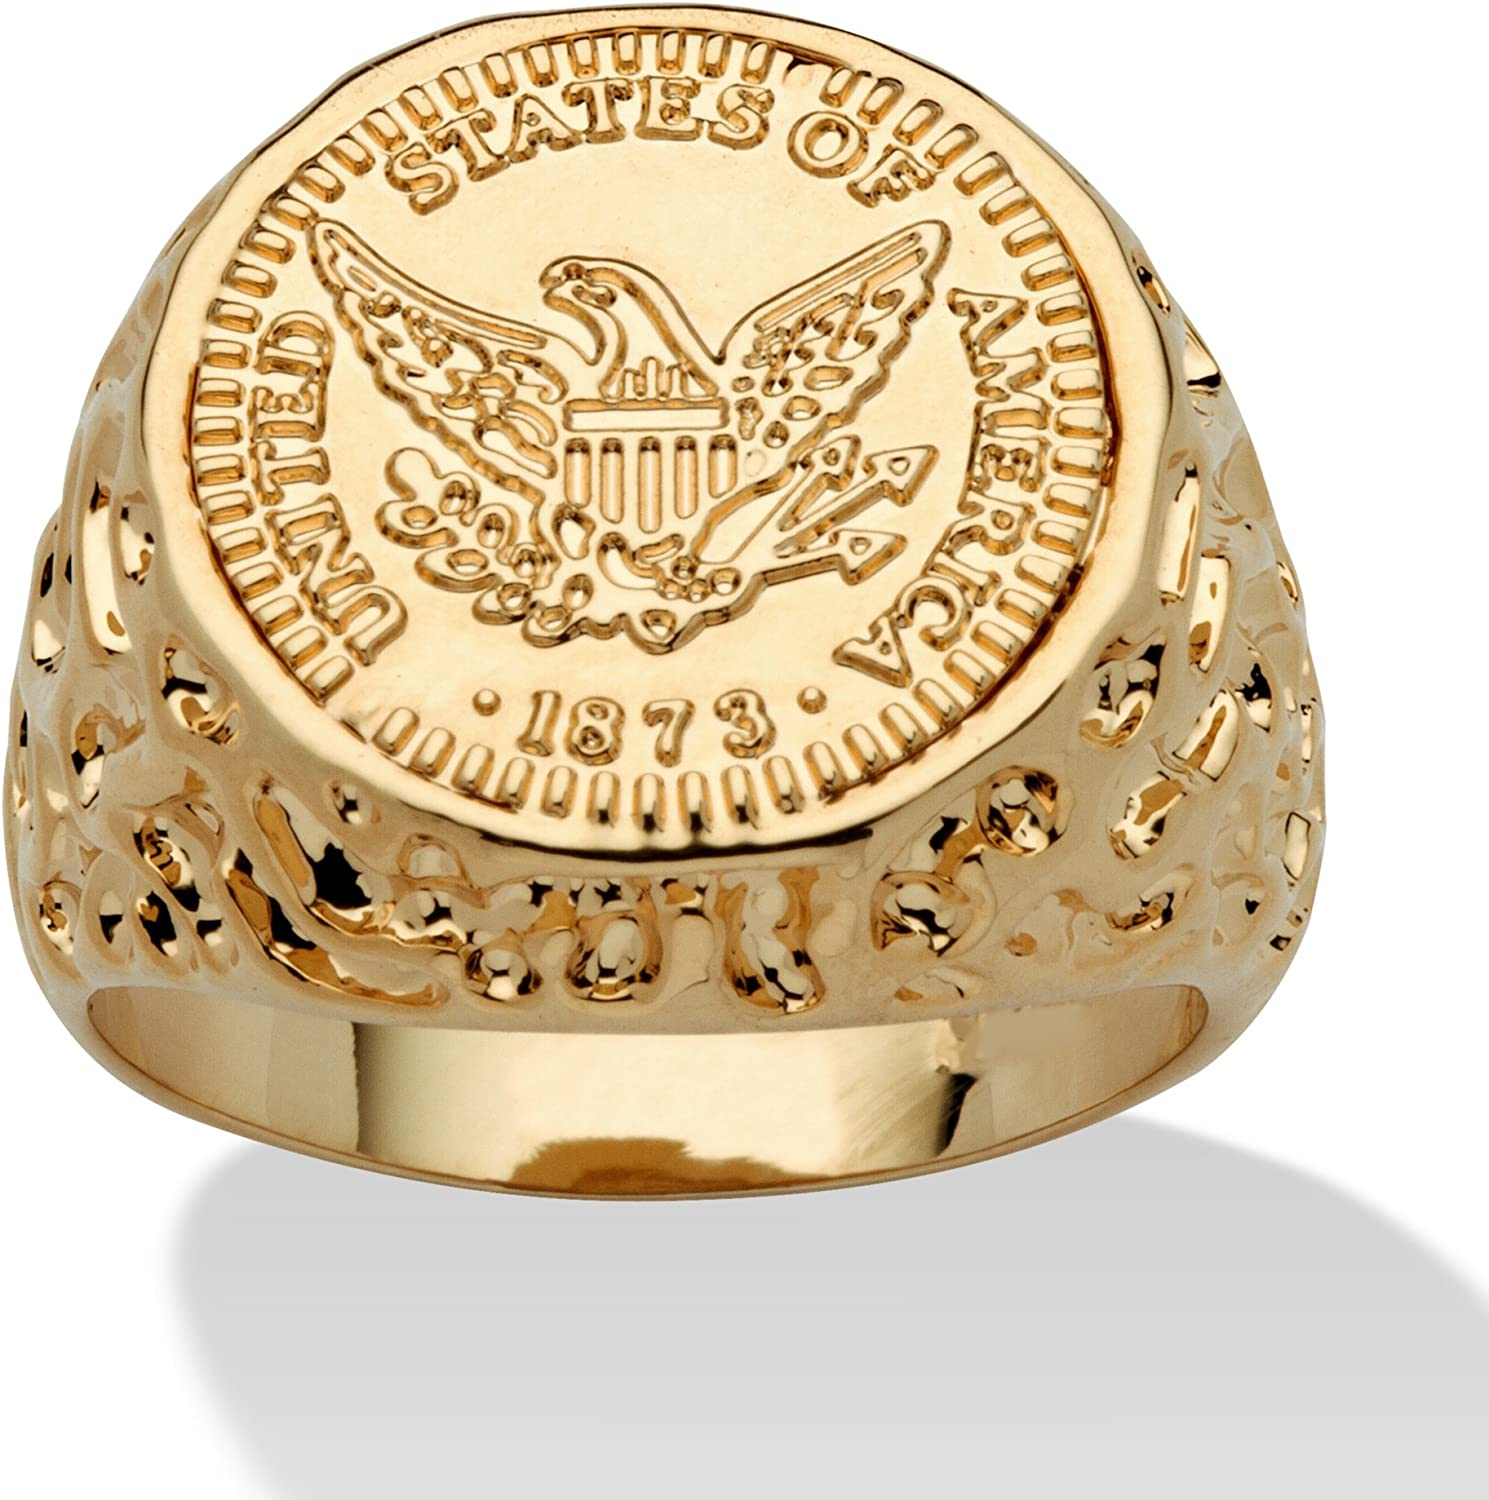 Palm Beach Jewelry Men's 14K Yellow Gold Plated American Eagle Coin Replica Nugget Ring